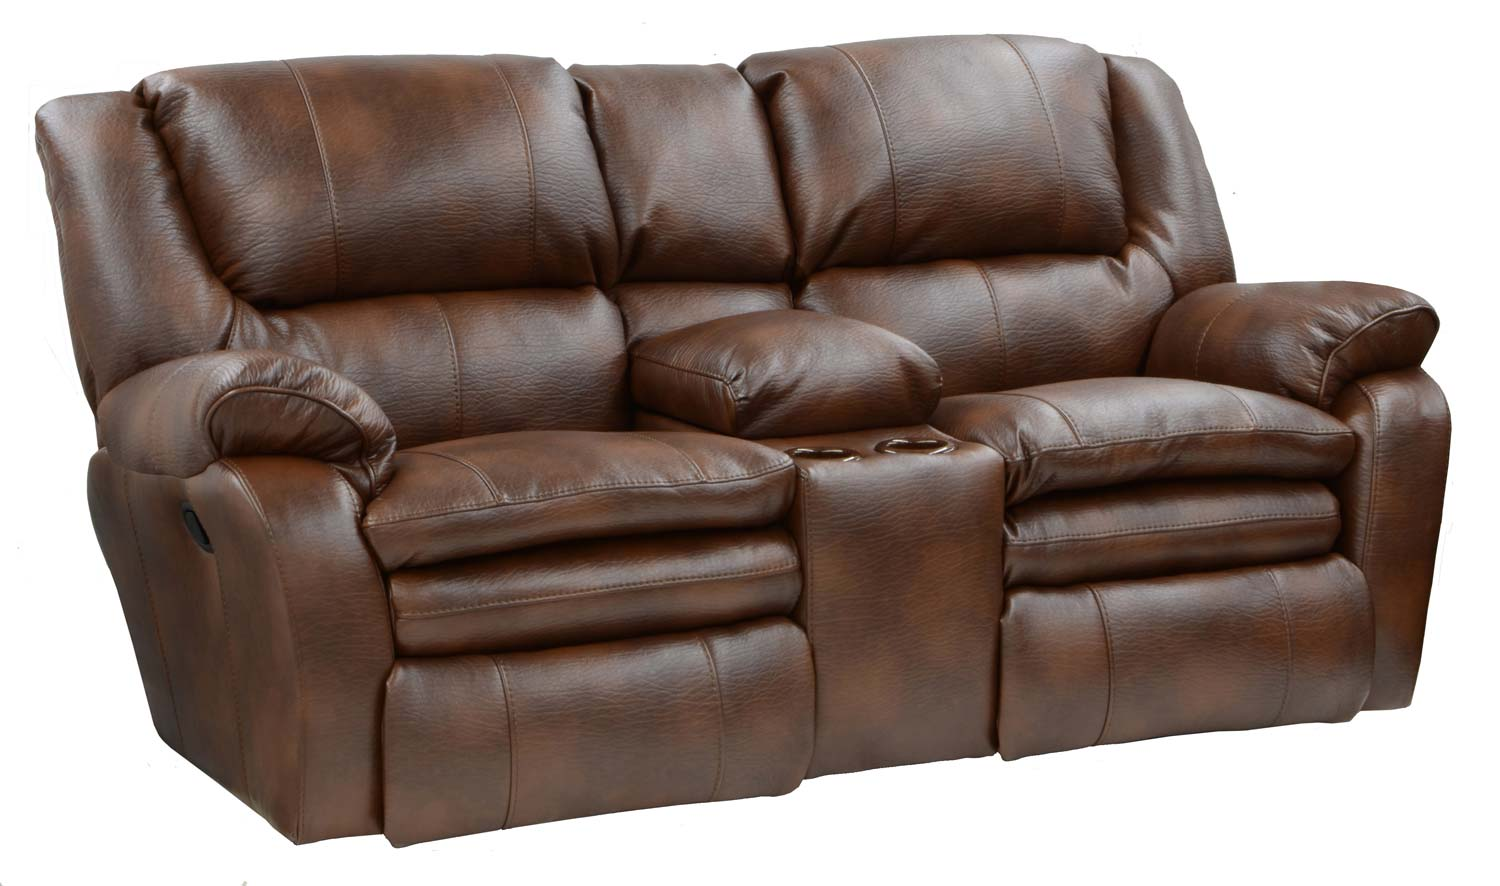 Catnapper Russell Bonded Leather Lay Flat Reclining Sofa Set Tobacco Cn 4101 Sofa Set Tobacco